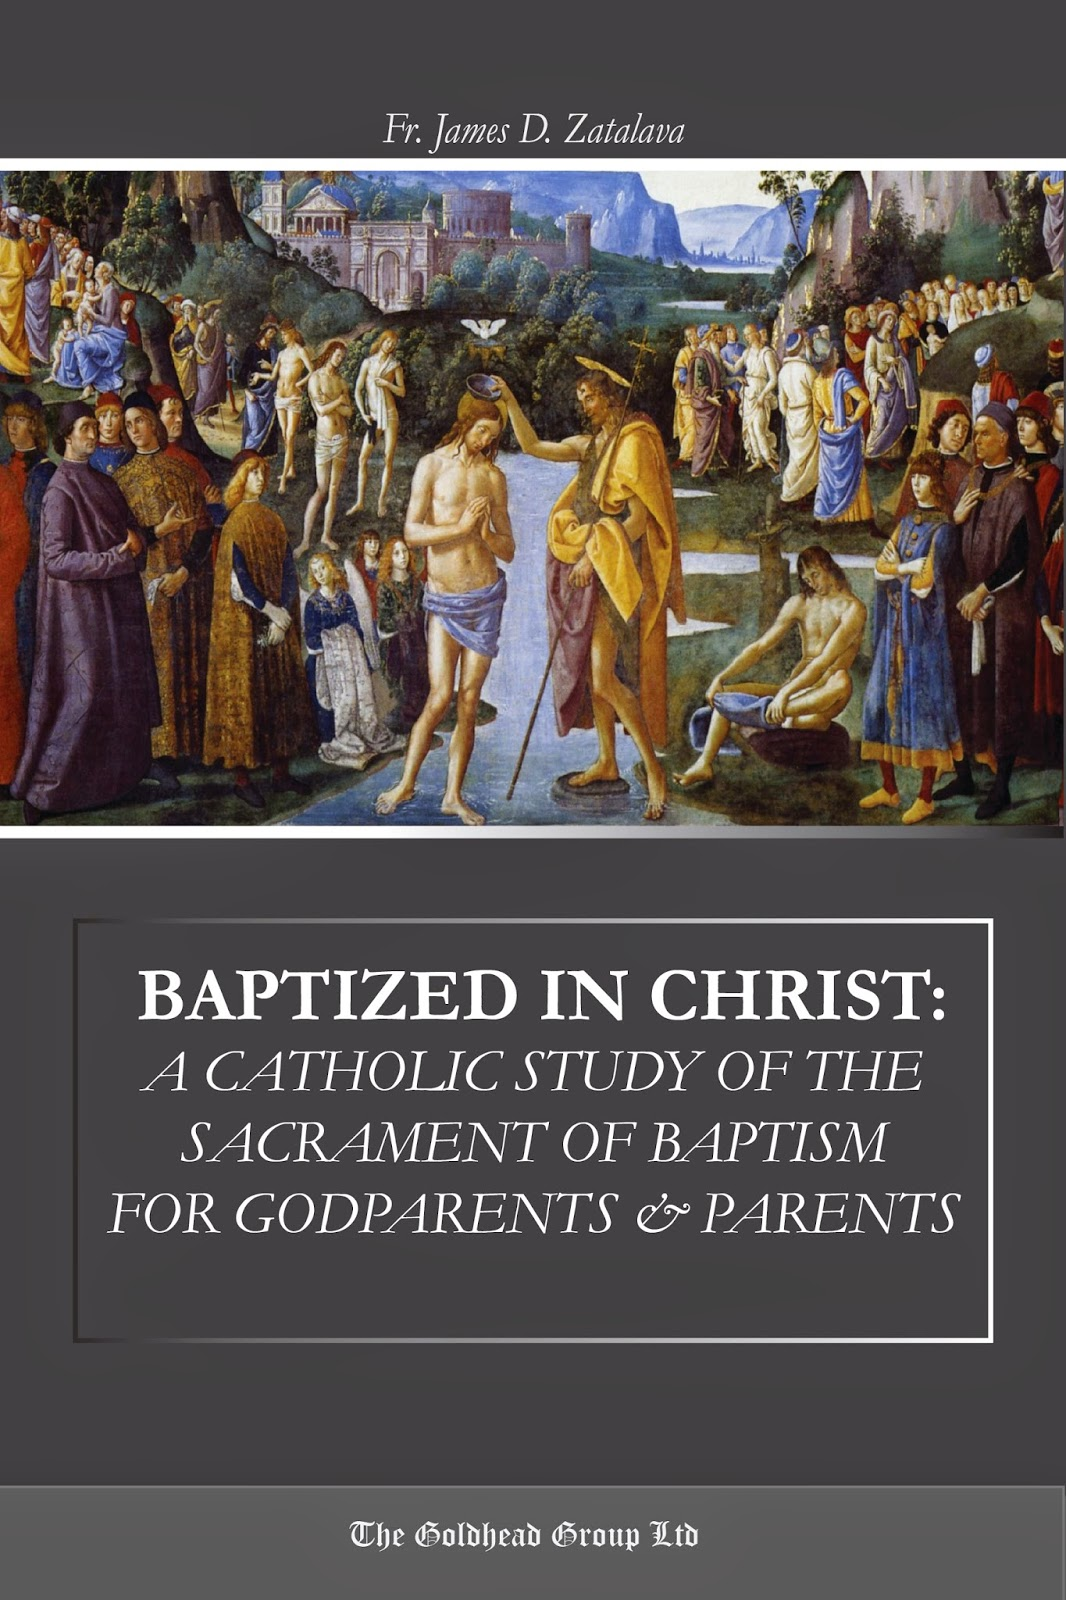 http://www.lulu.com/shop/fr-james-zatalava/baptized-in-christ-a-catholic-study-of-the-sacrament-of-baptism-for-godparents-parents/ebook/product-22067200.html